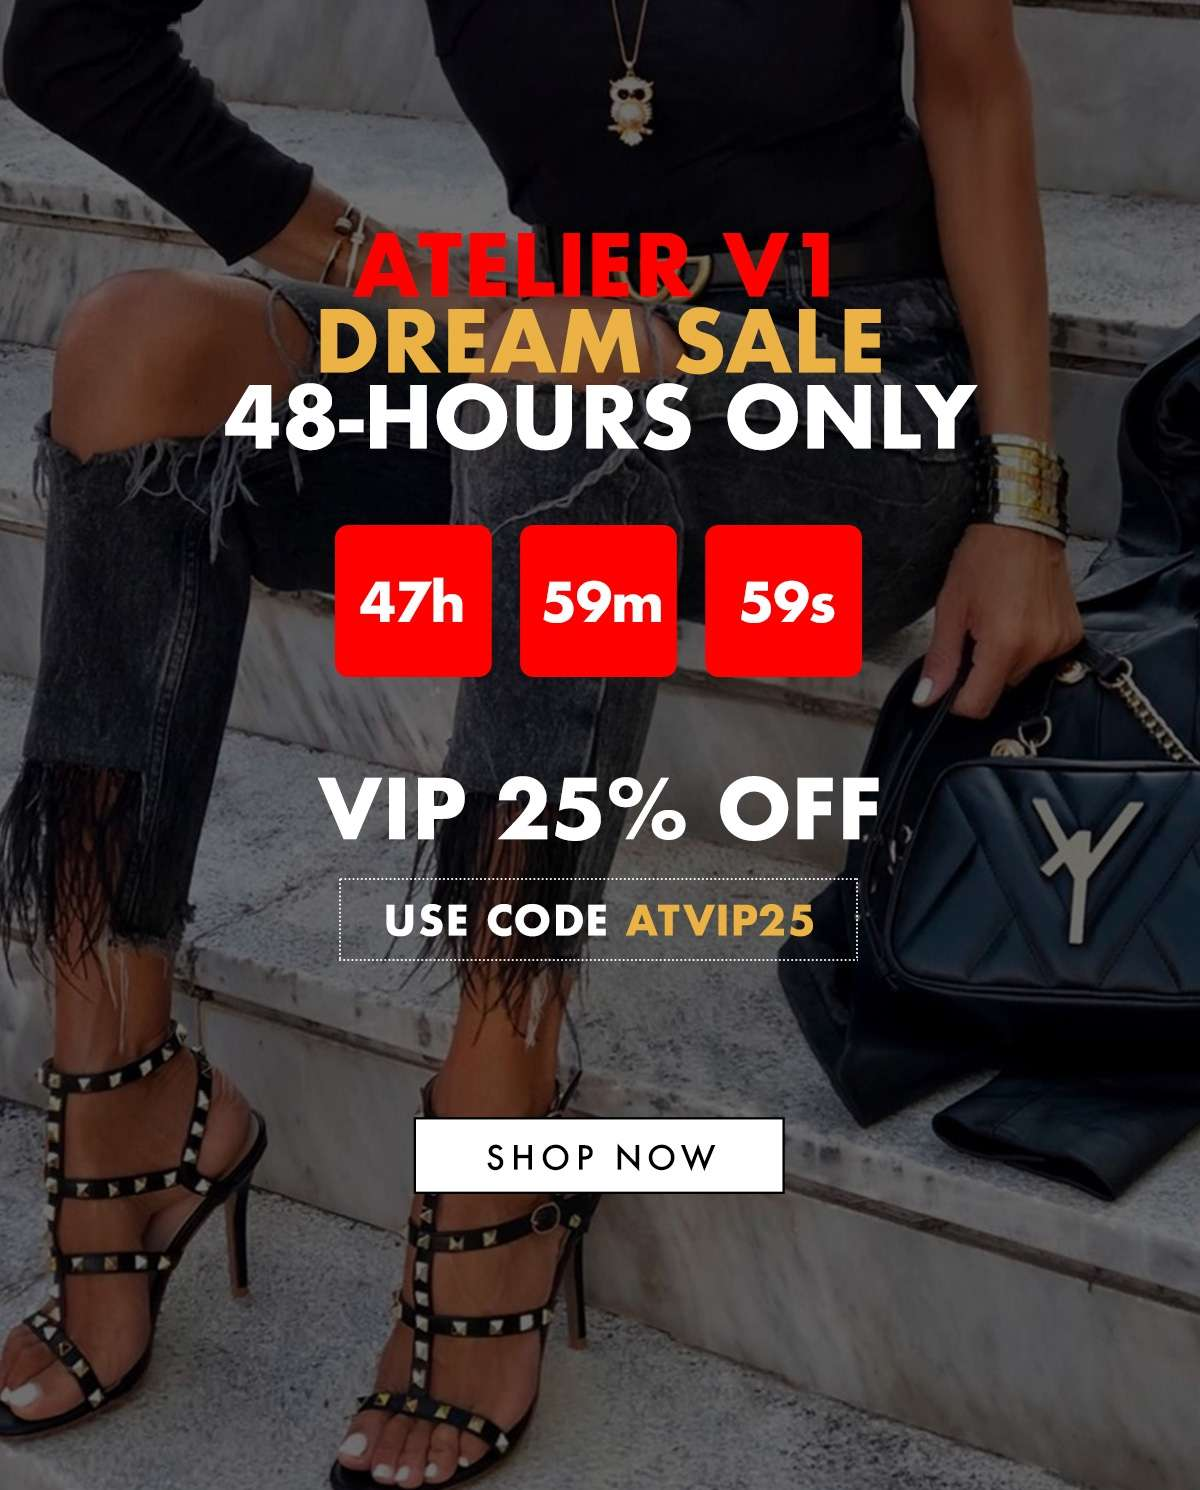 ATELIER V1 DREAM SALE 48-HOURS ONLY Vip 25% Off Use Code ATVIP25